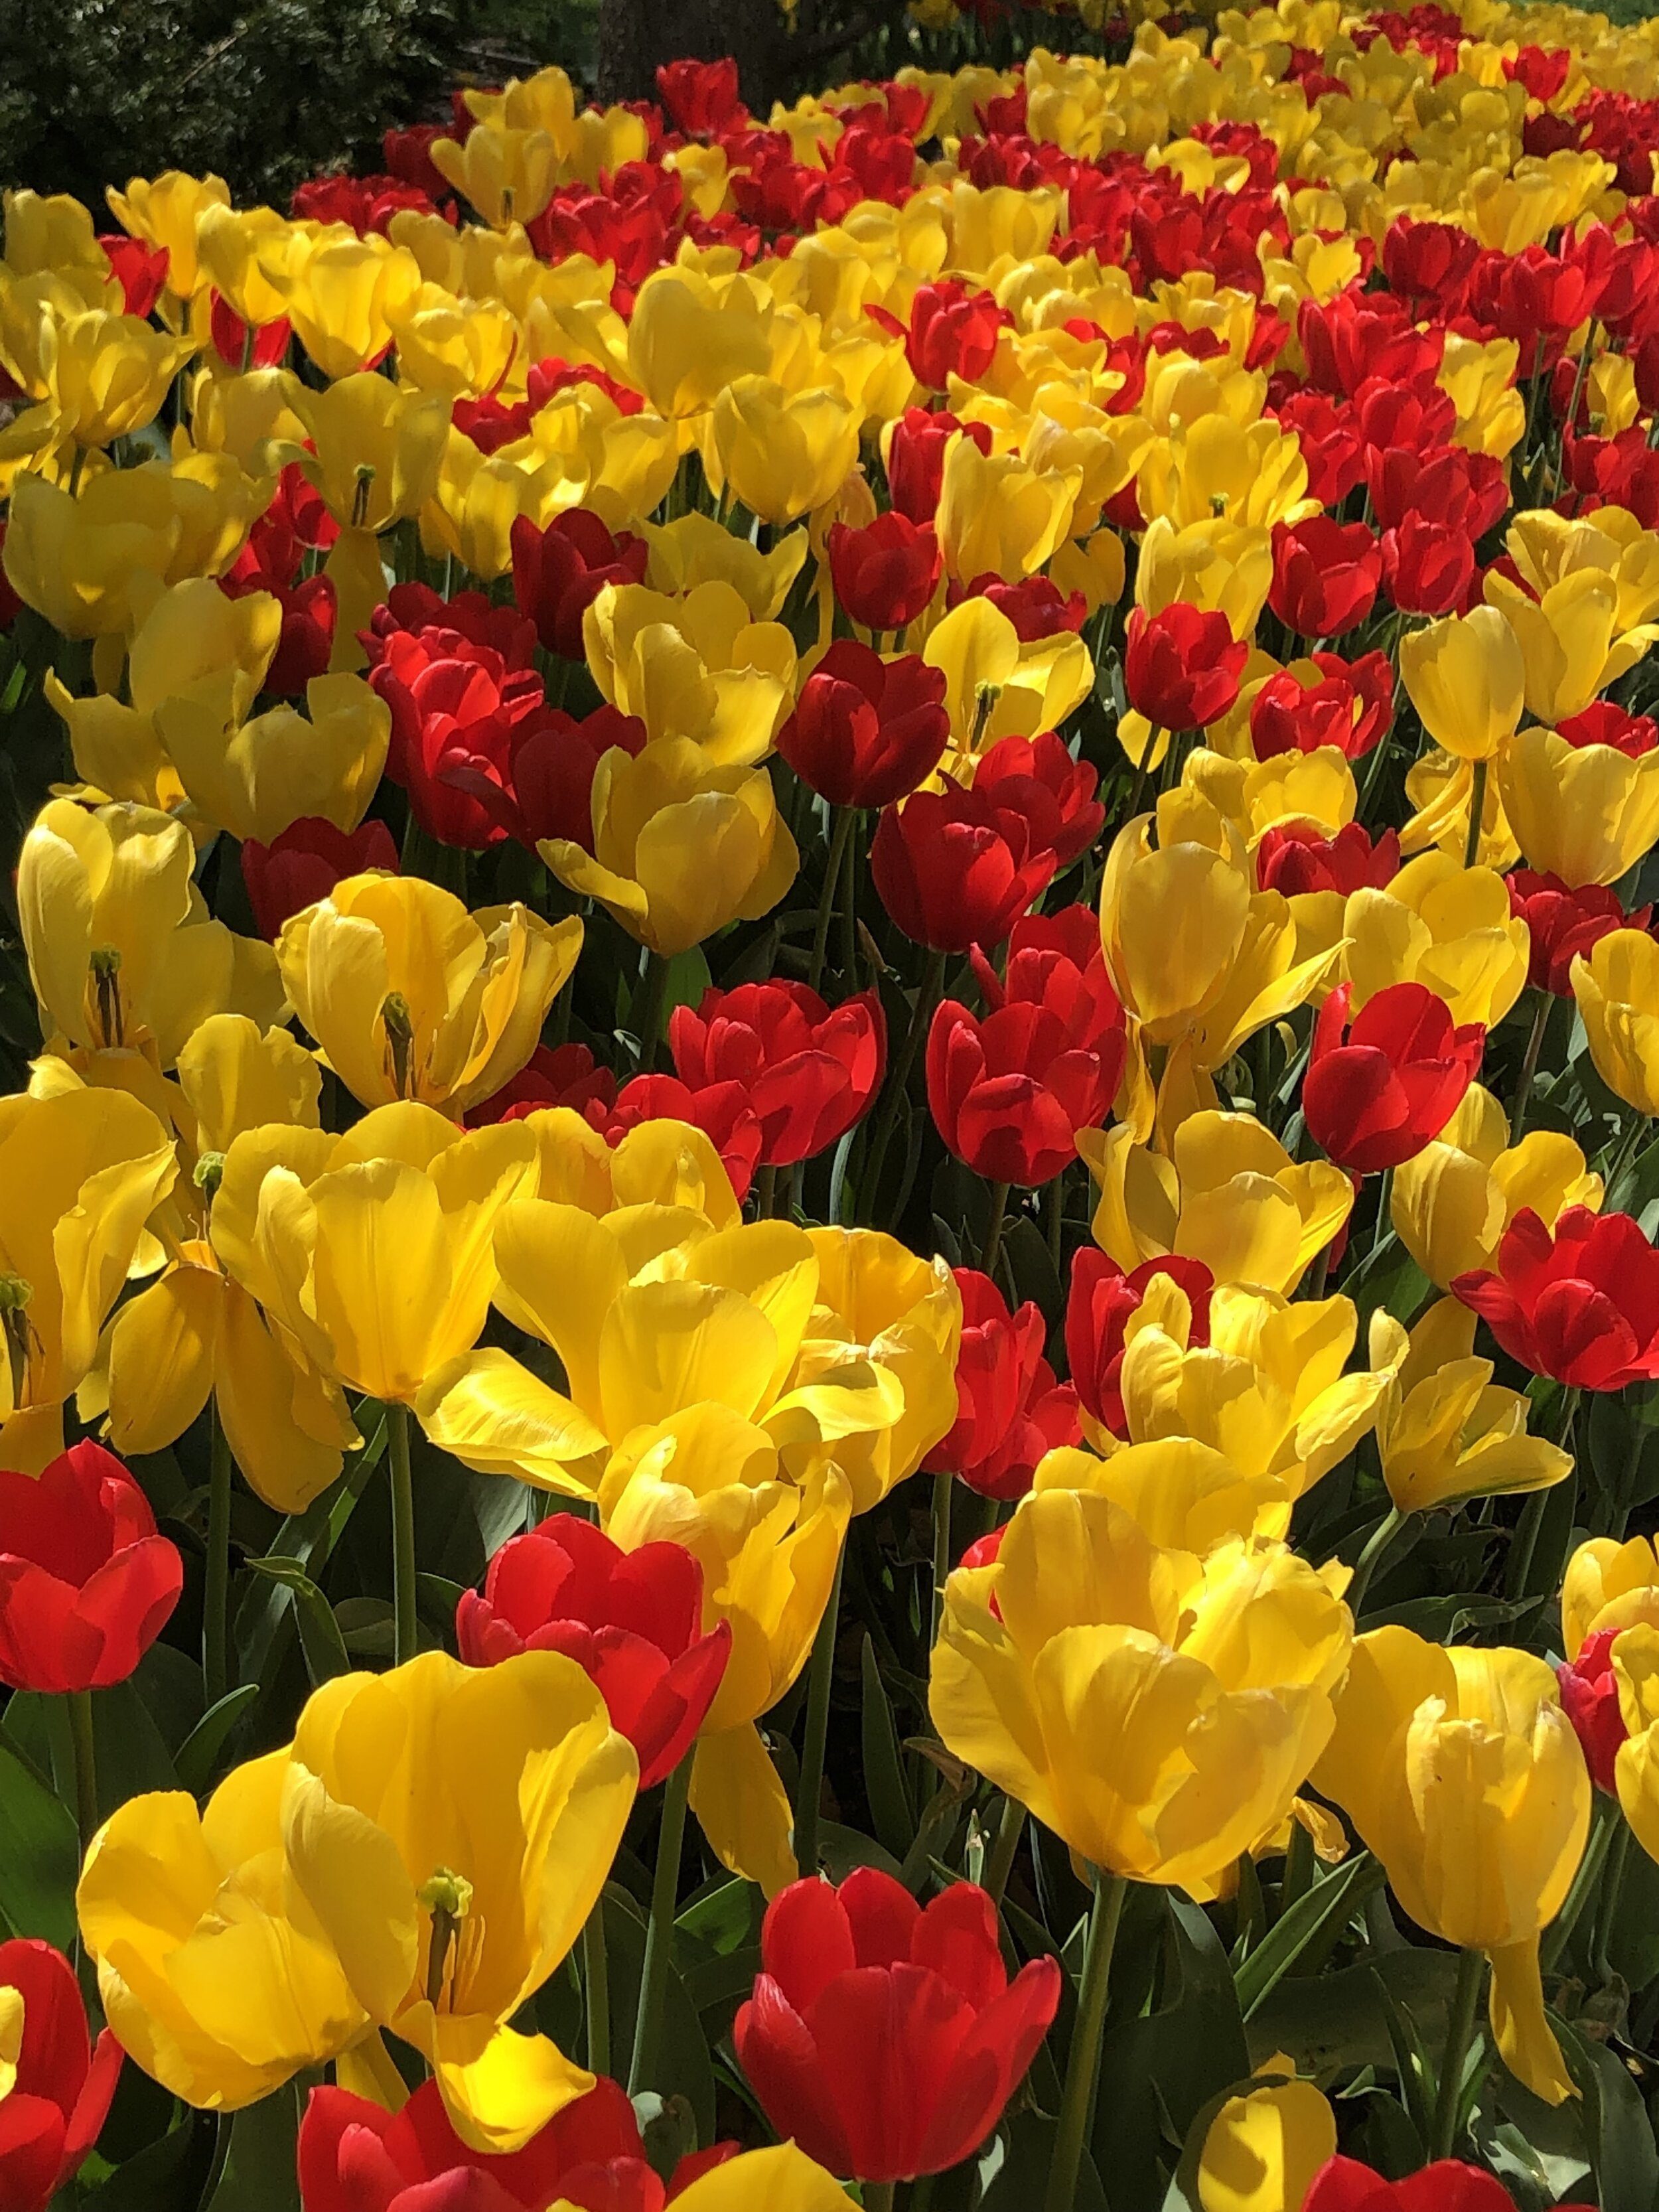 Tulips at the Myriad Gardens in Spring 2019